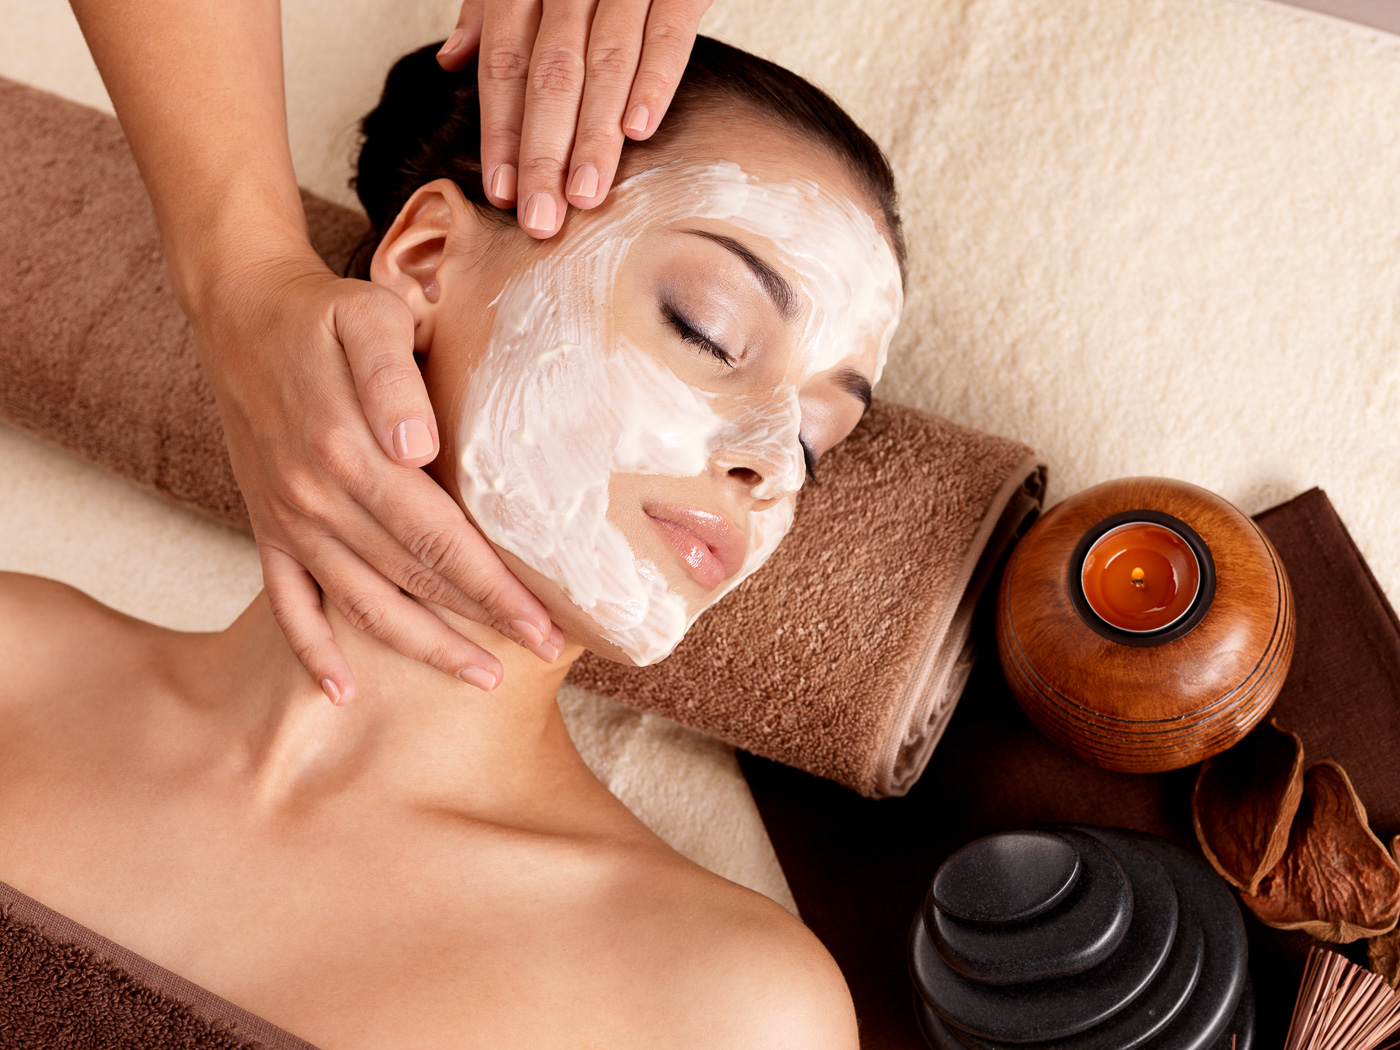 a girl enjoying a facial in a spa